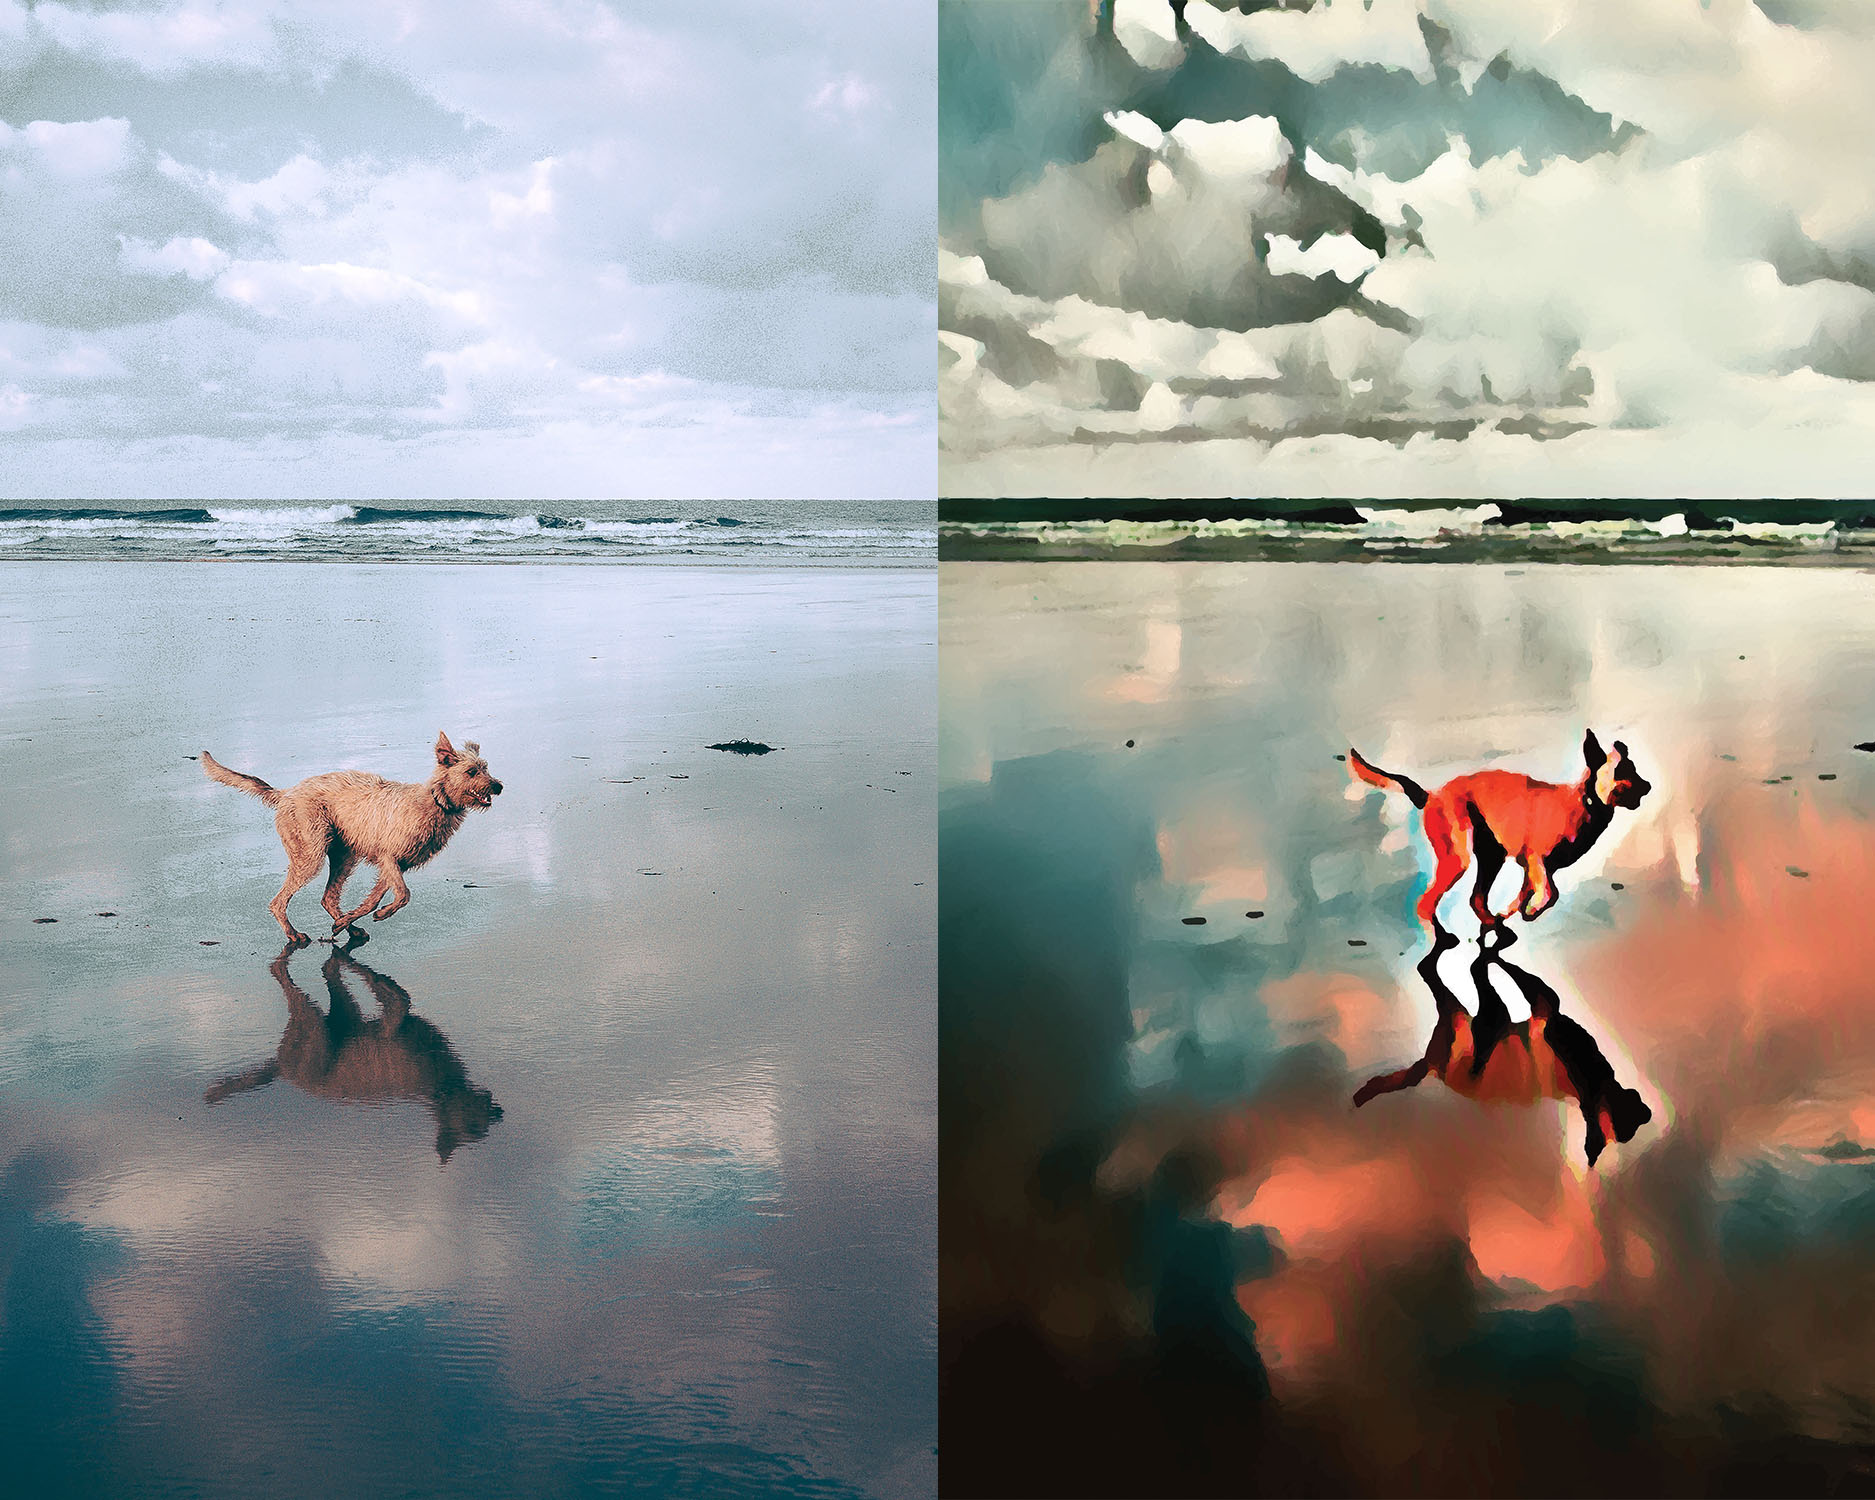 Before and after stylized image of a dog running on a glassy beach